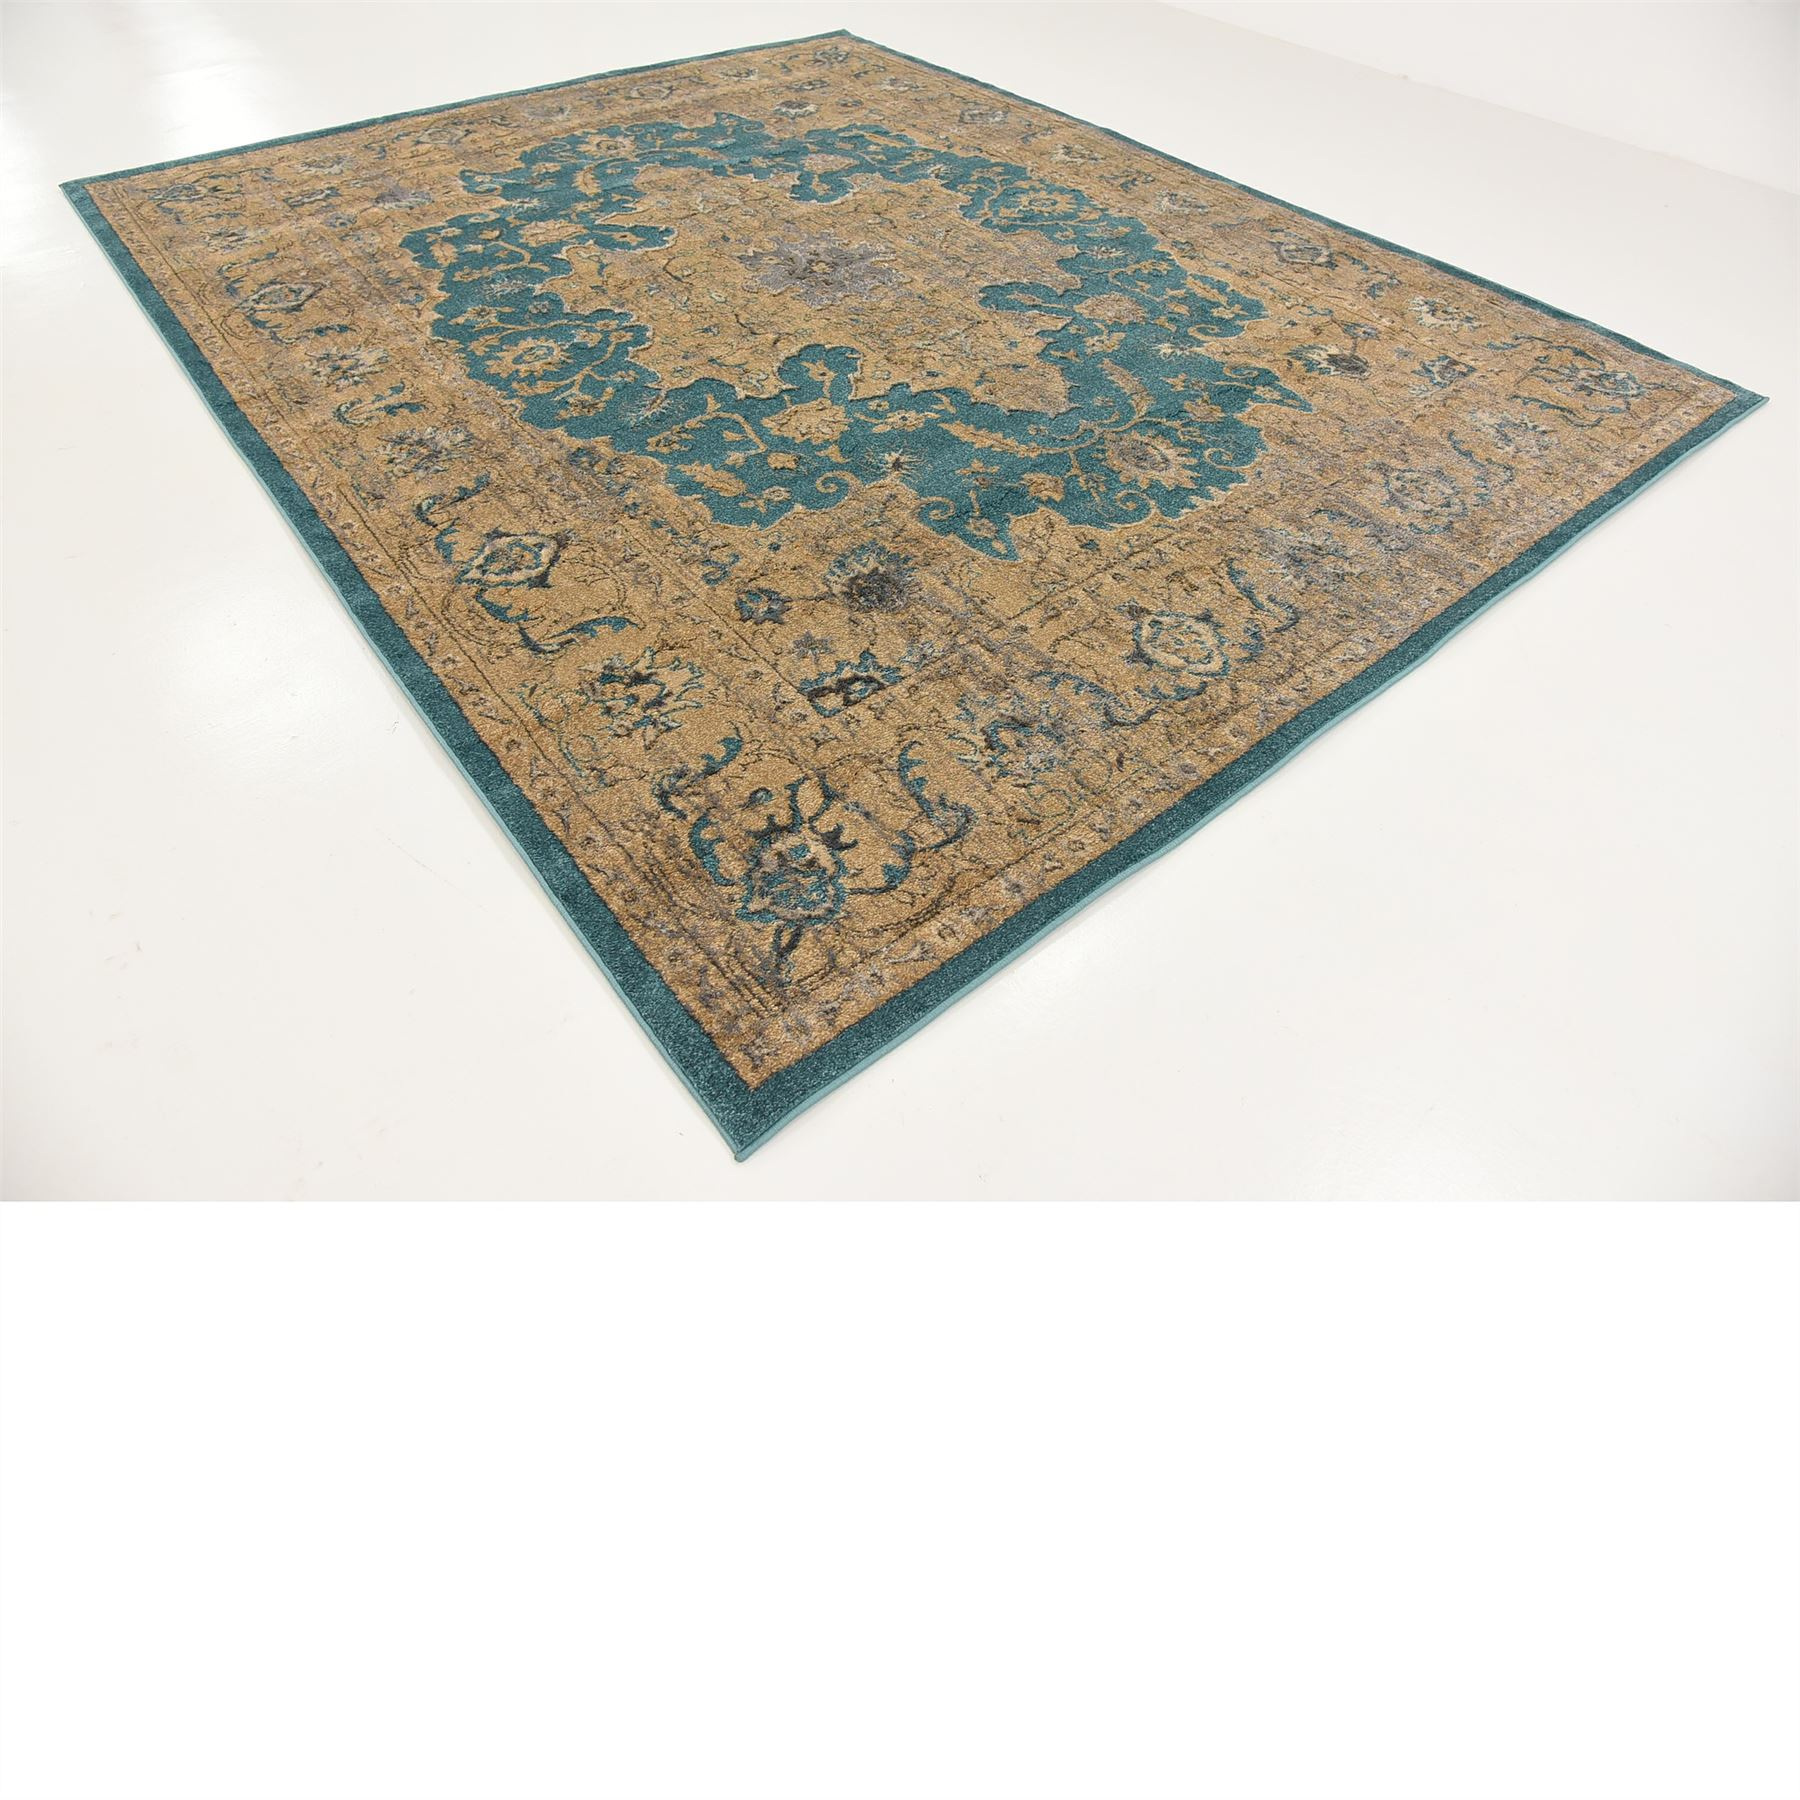 Teal 8' X 10' Oriental Carpets Modern Rugs Floor Carpet